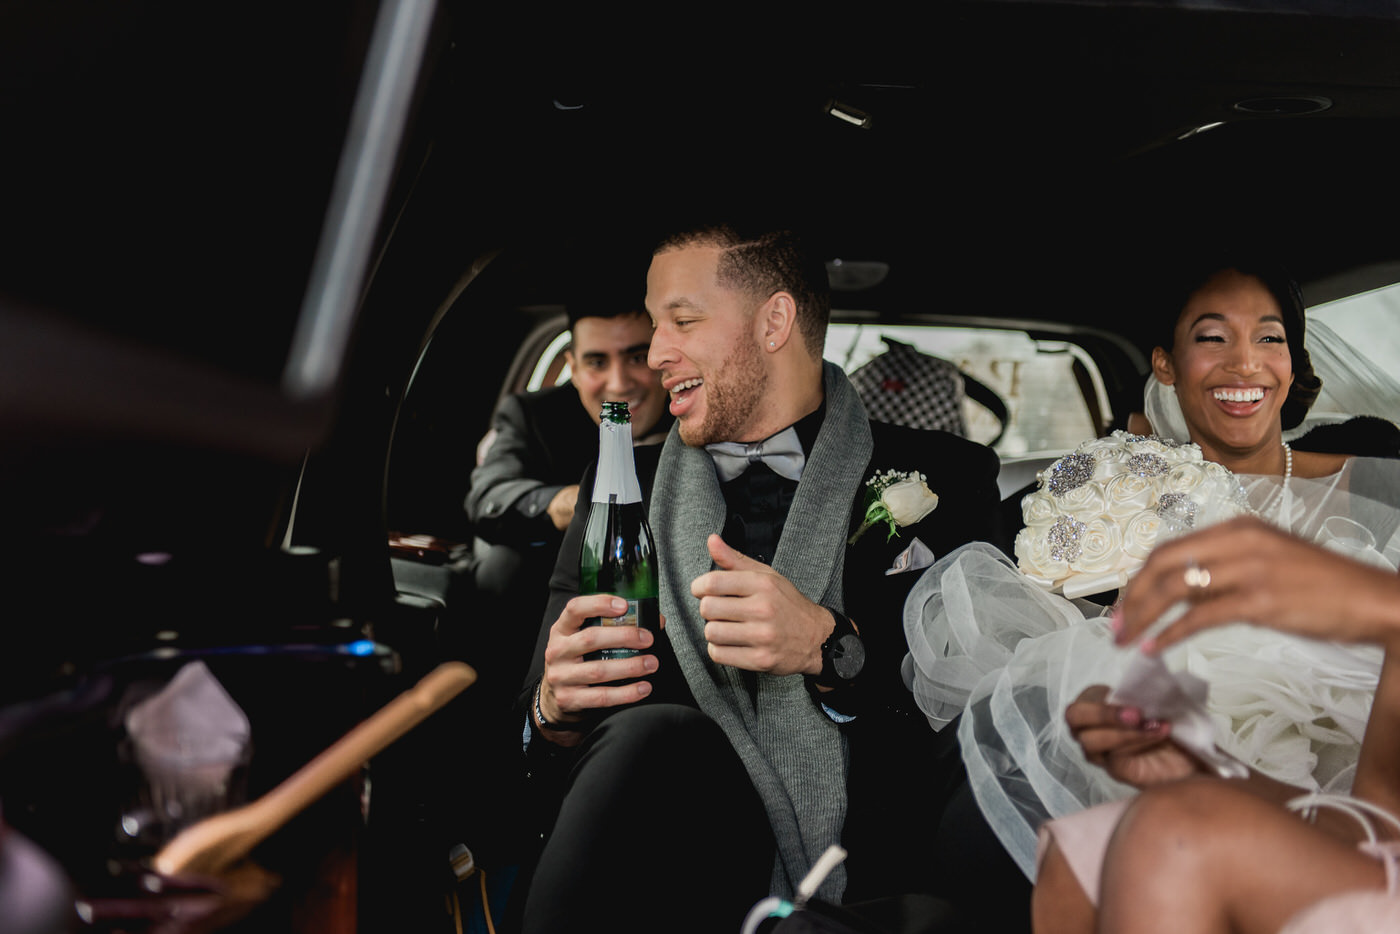 Groom popping a bottle of champagne inside limo in Toronto